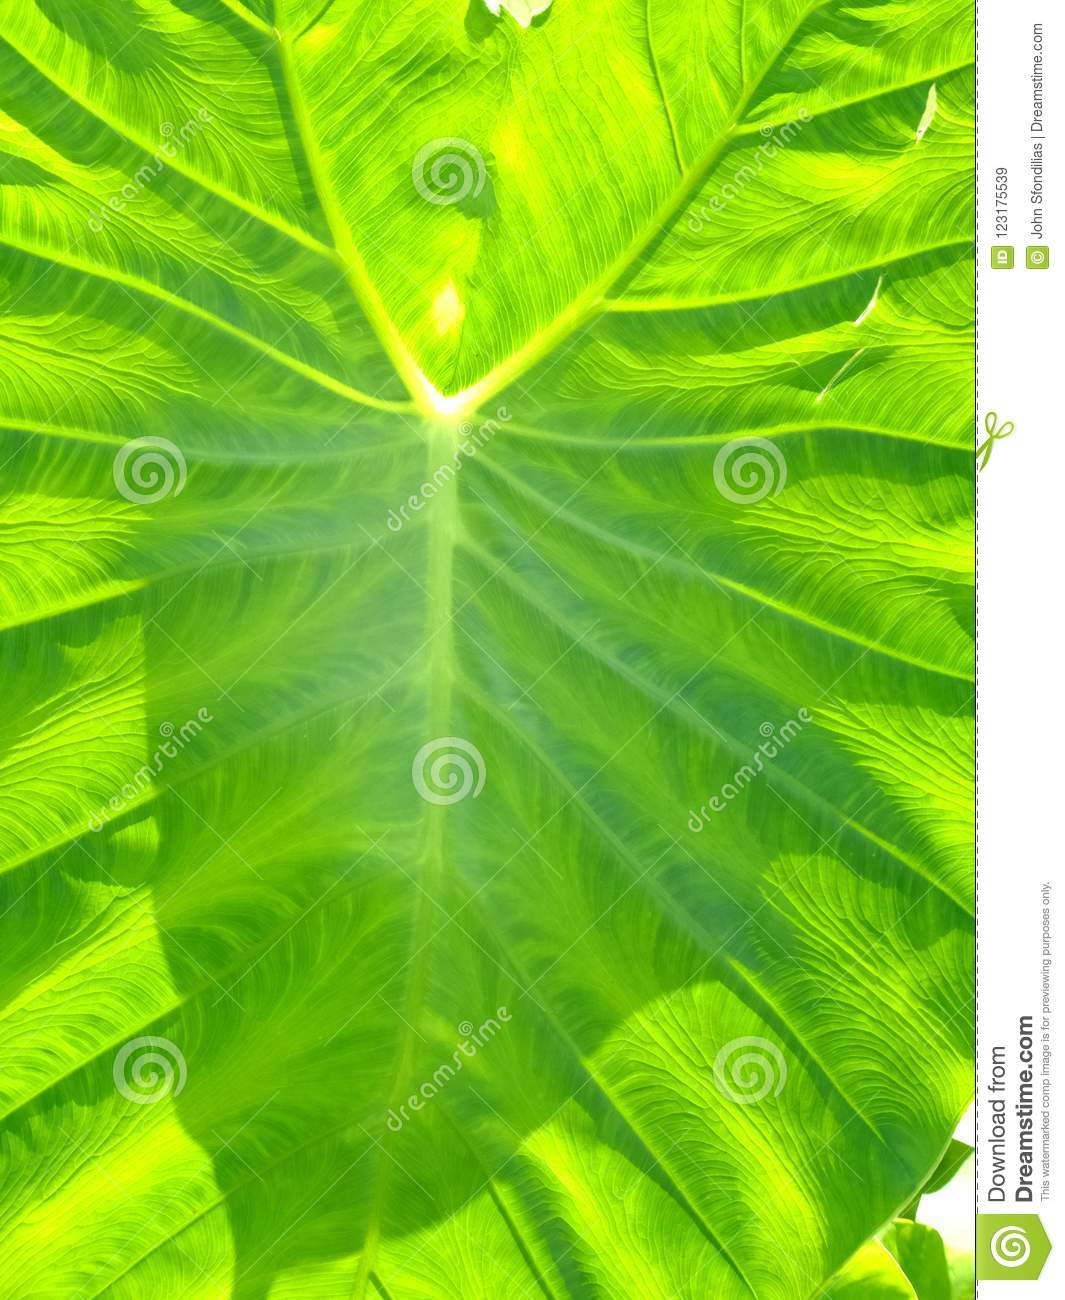 Download Going Green stock image. Image of capillary, transport - 123175539